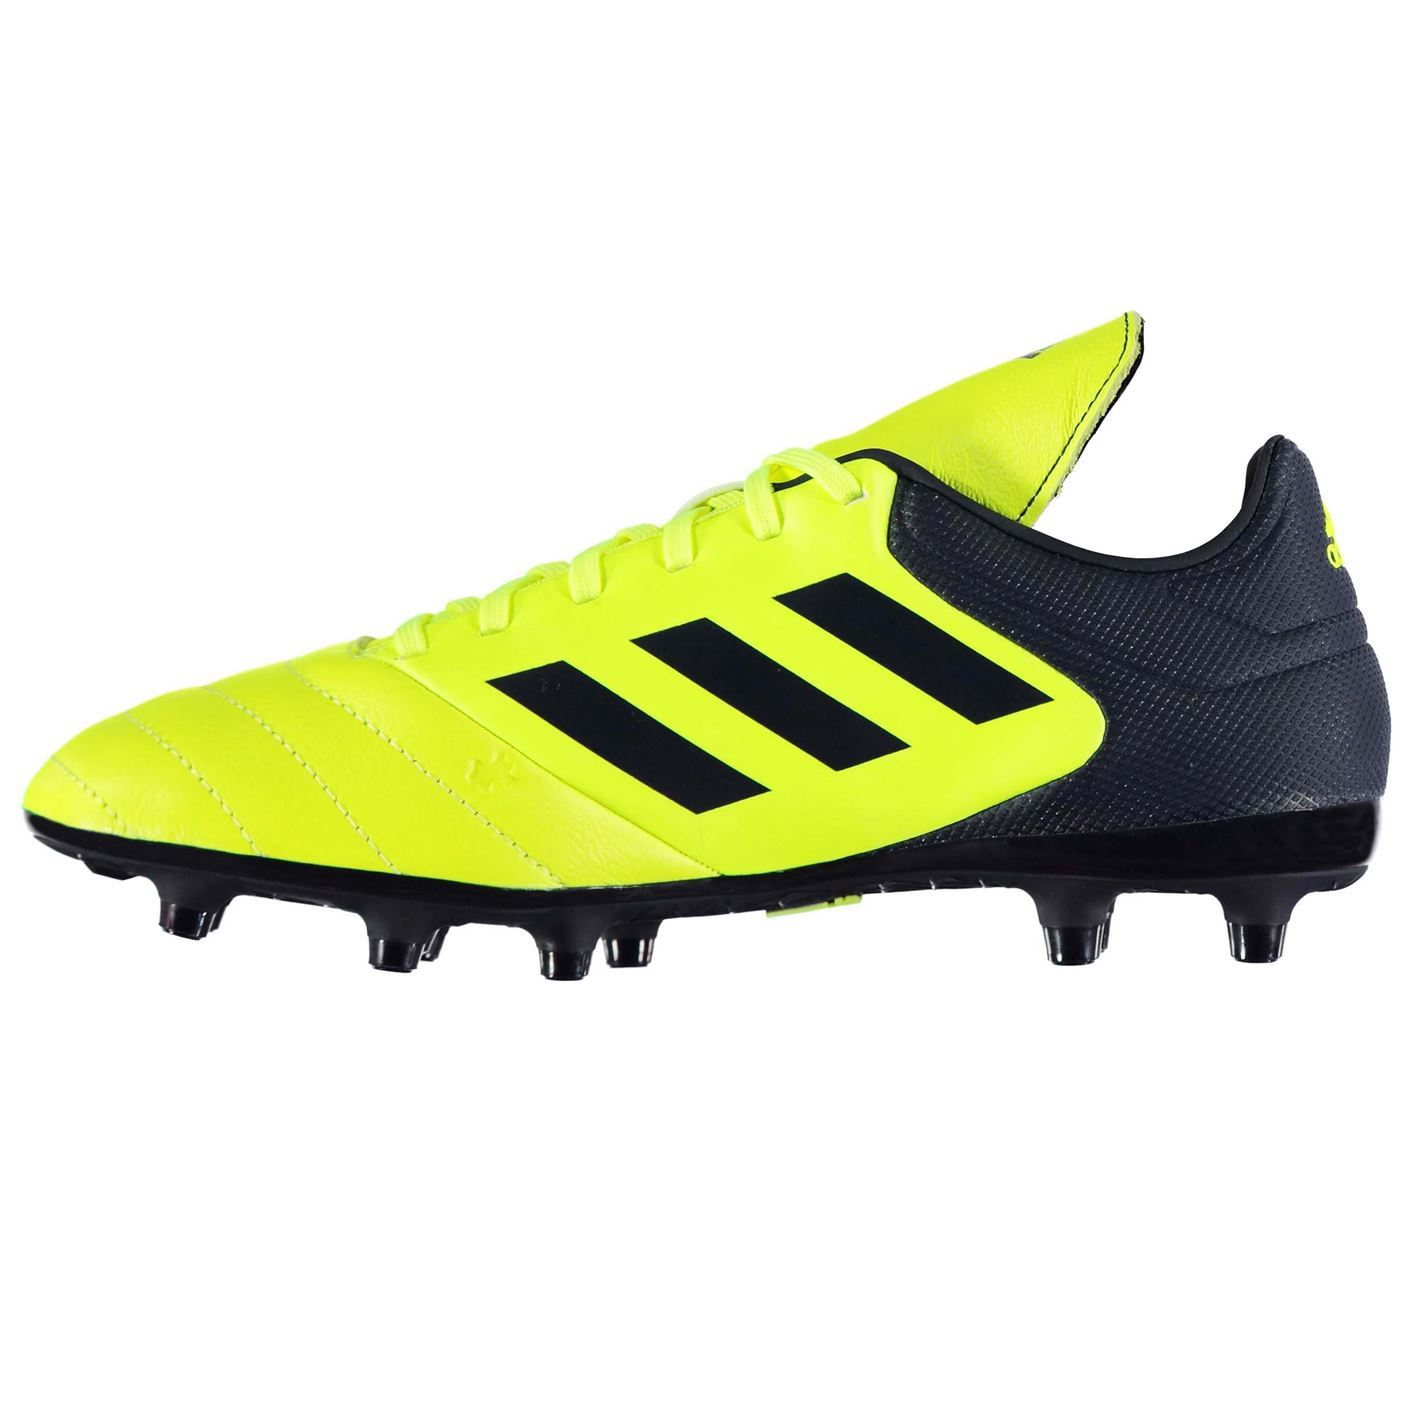 the latest 941e9 2ef05 adidas Copa 17.3 FG Firm Ground Football Boots Mens Yellow Soccer Shoes  Cleats